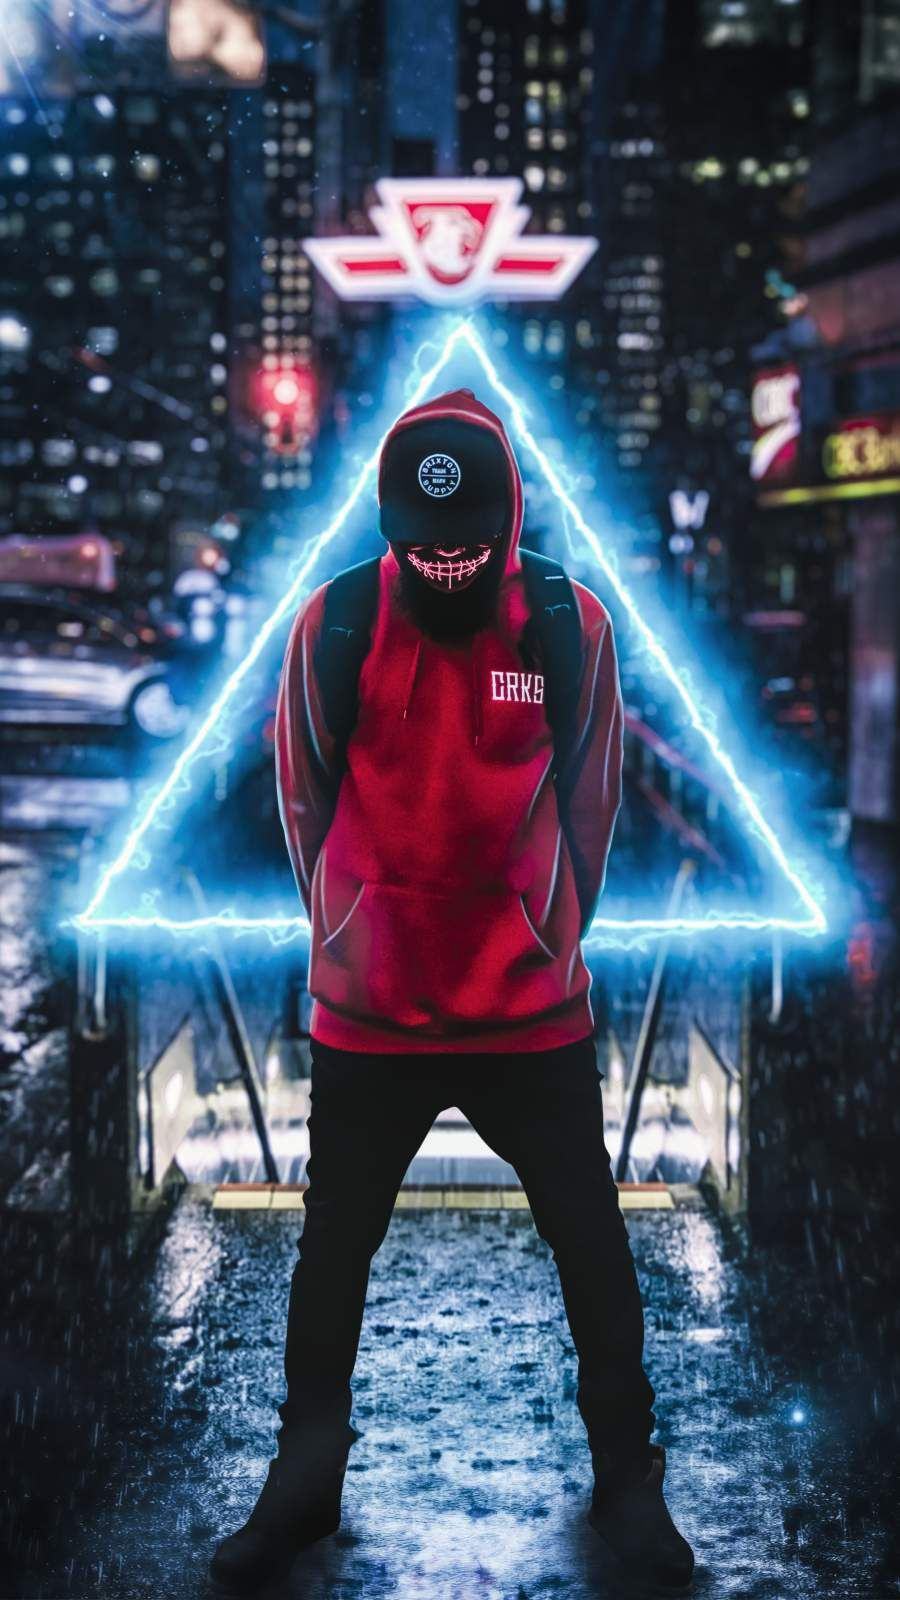 Hoodie Guy Triangle Iphone Wallpaper Cool Wallpapers For Phones Iphone Wallpaper For Guys Phone Wallpaper Iphone android iphone dope wallpaper hd